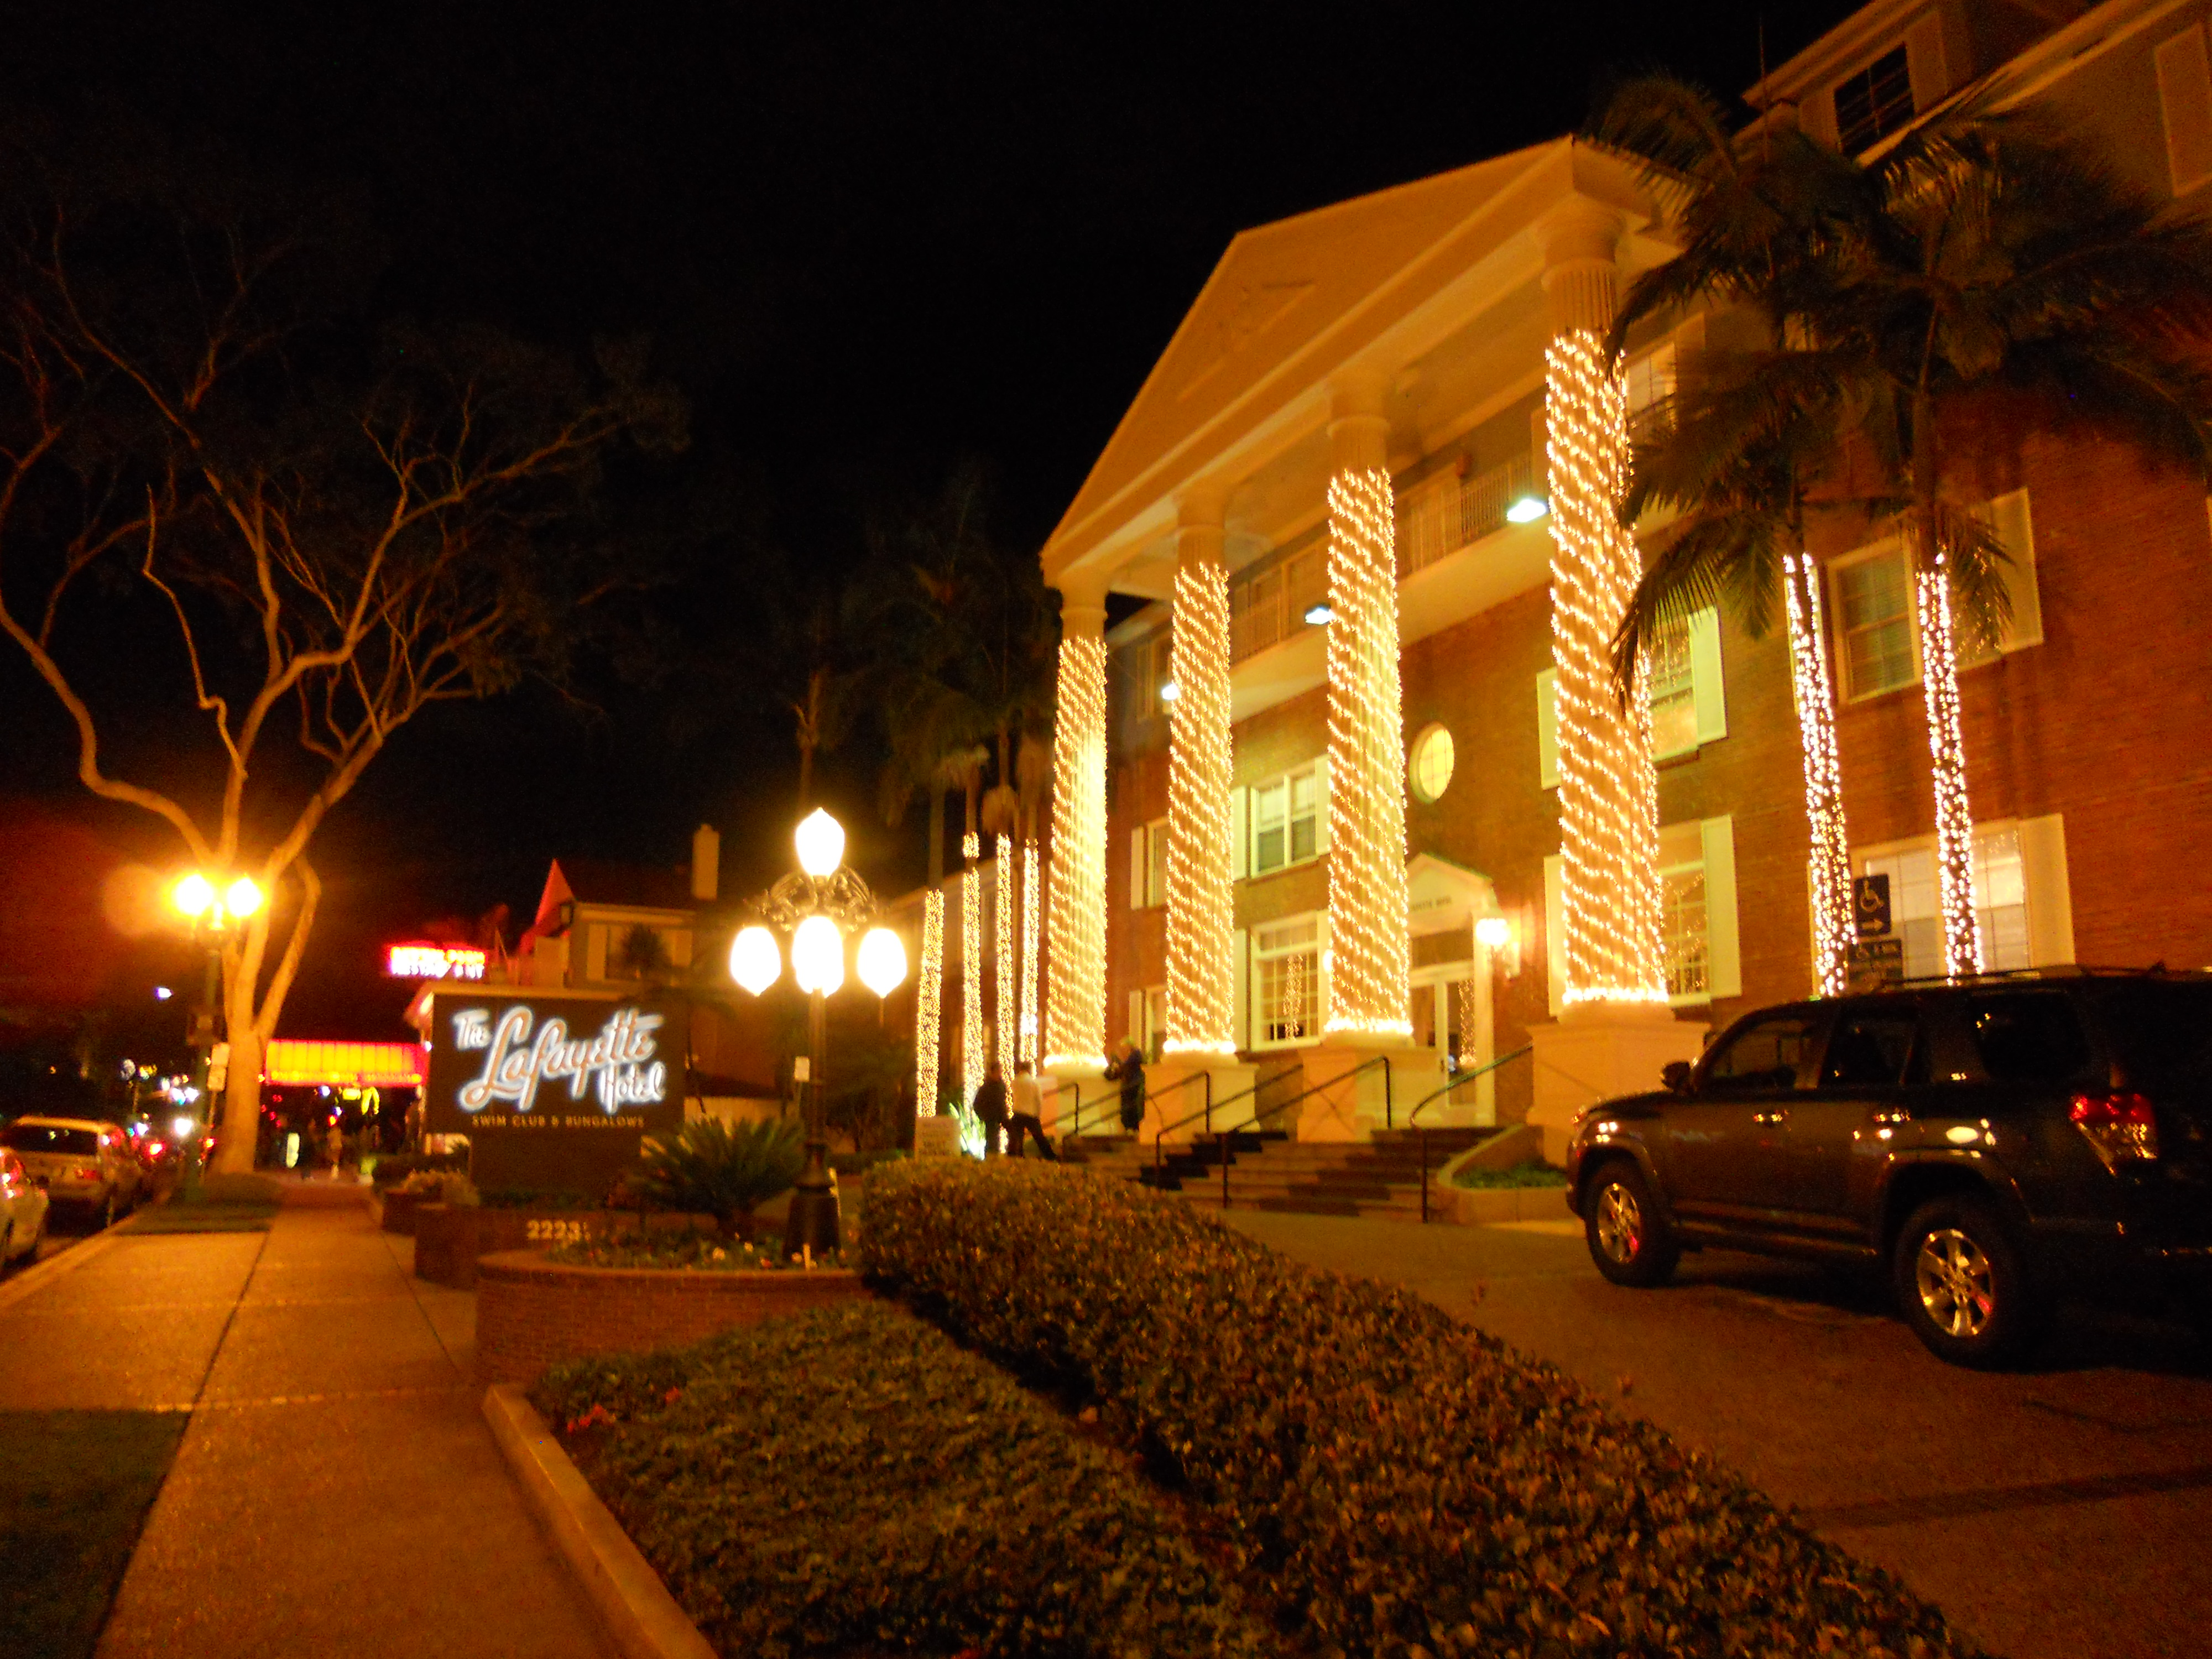 Entrance of the Lafayette Hotel San Diego at night